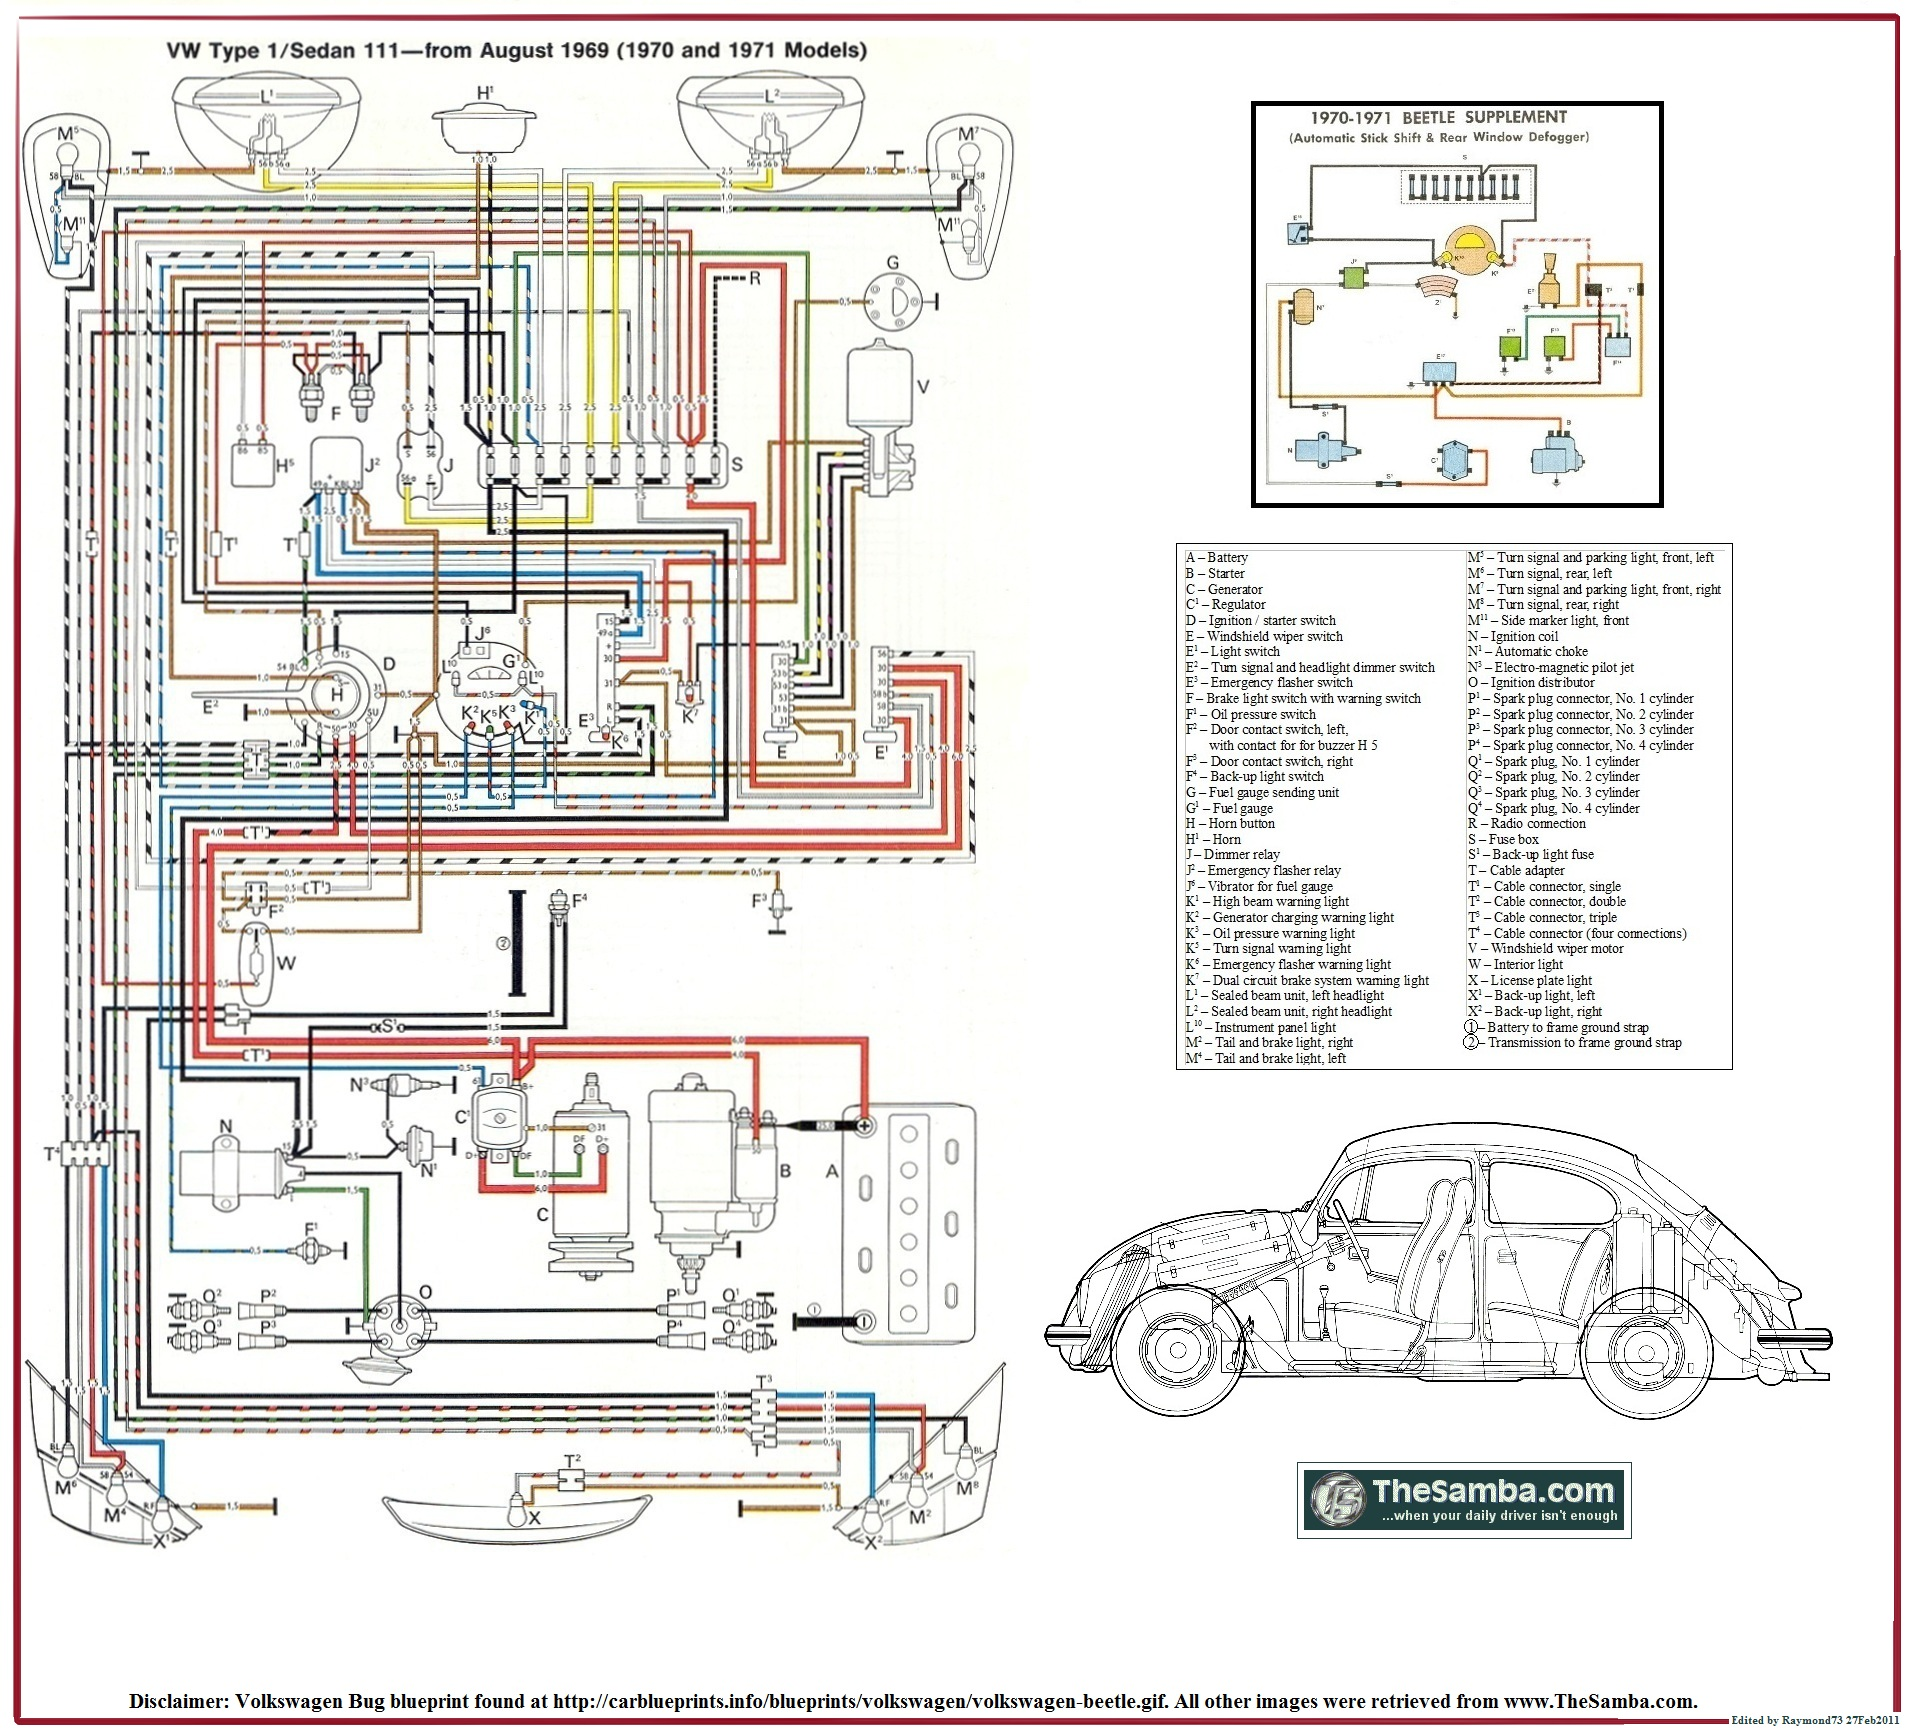 69 Vw Beetle Wiring Diagram Books Of 68 Amc Amx Thesamba Com Late Model Super 1968 Up View Topic Rh 1969